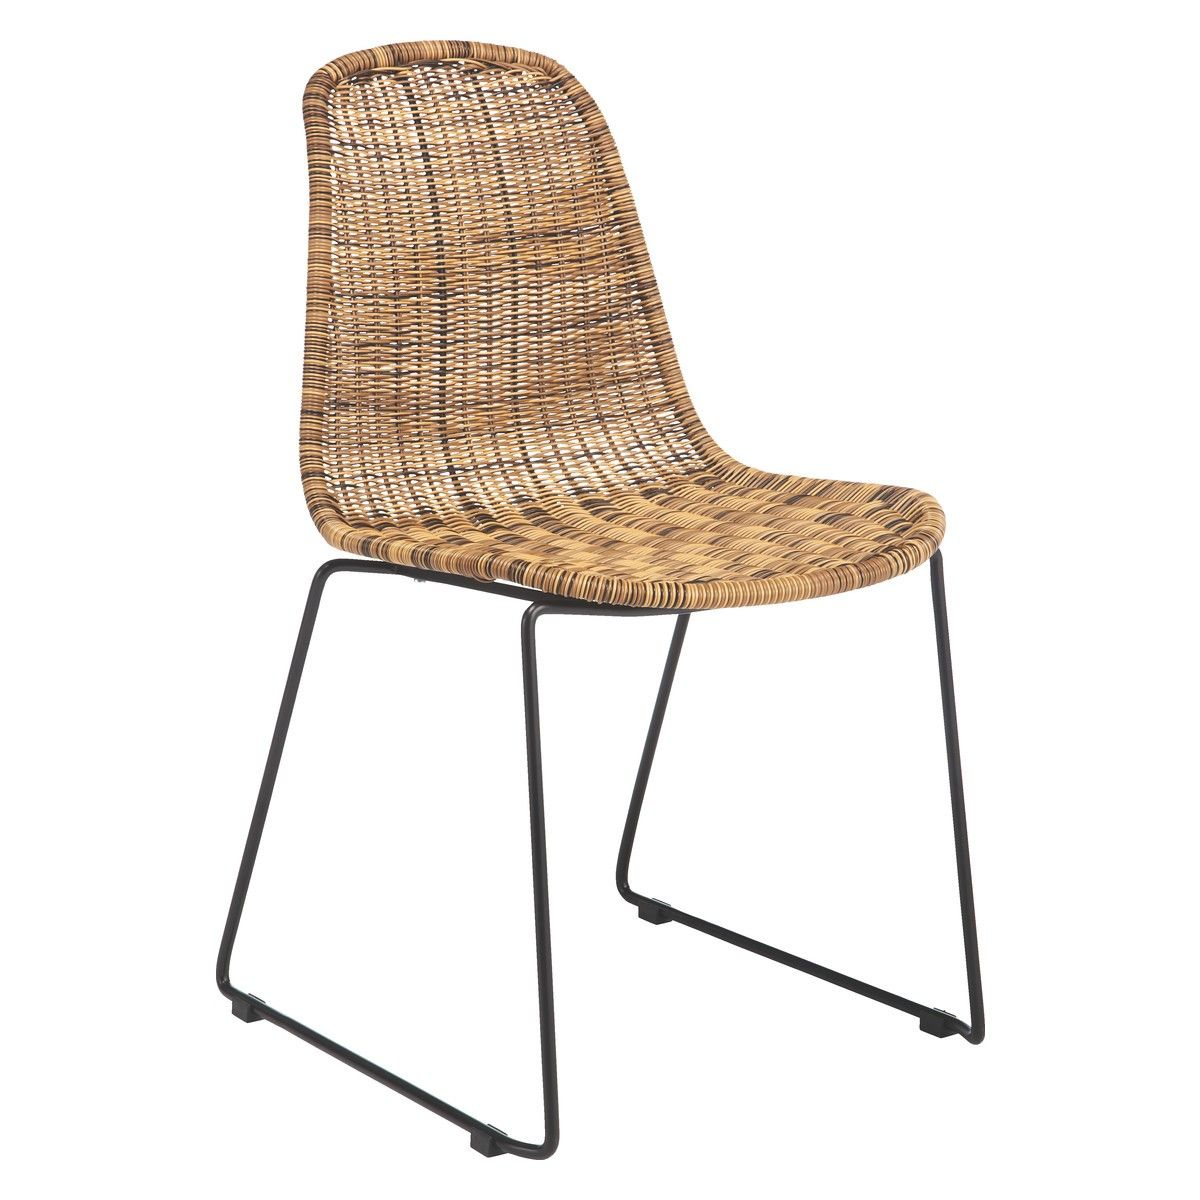 Rattan Chairs Wicker Dining Chairs Mickey Synthetic Rattan Chair Remarkable